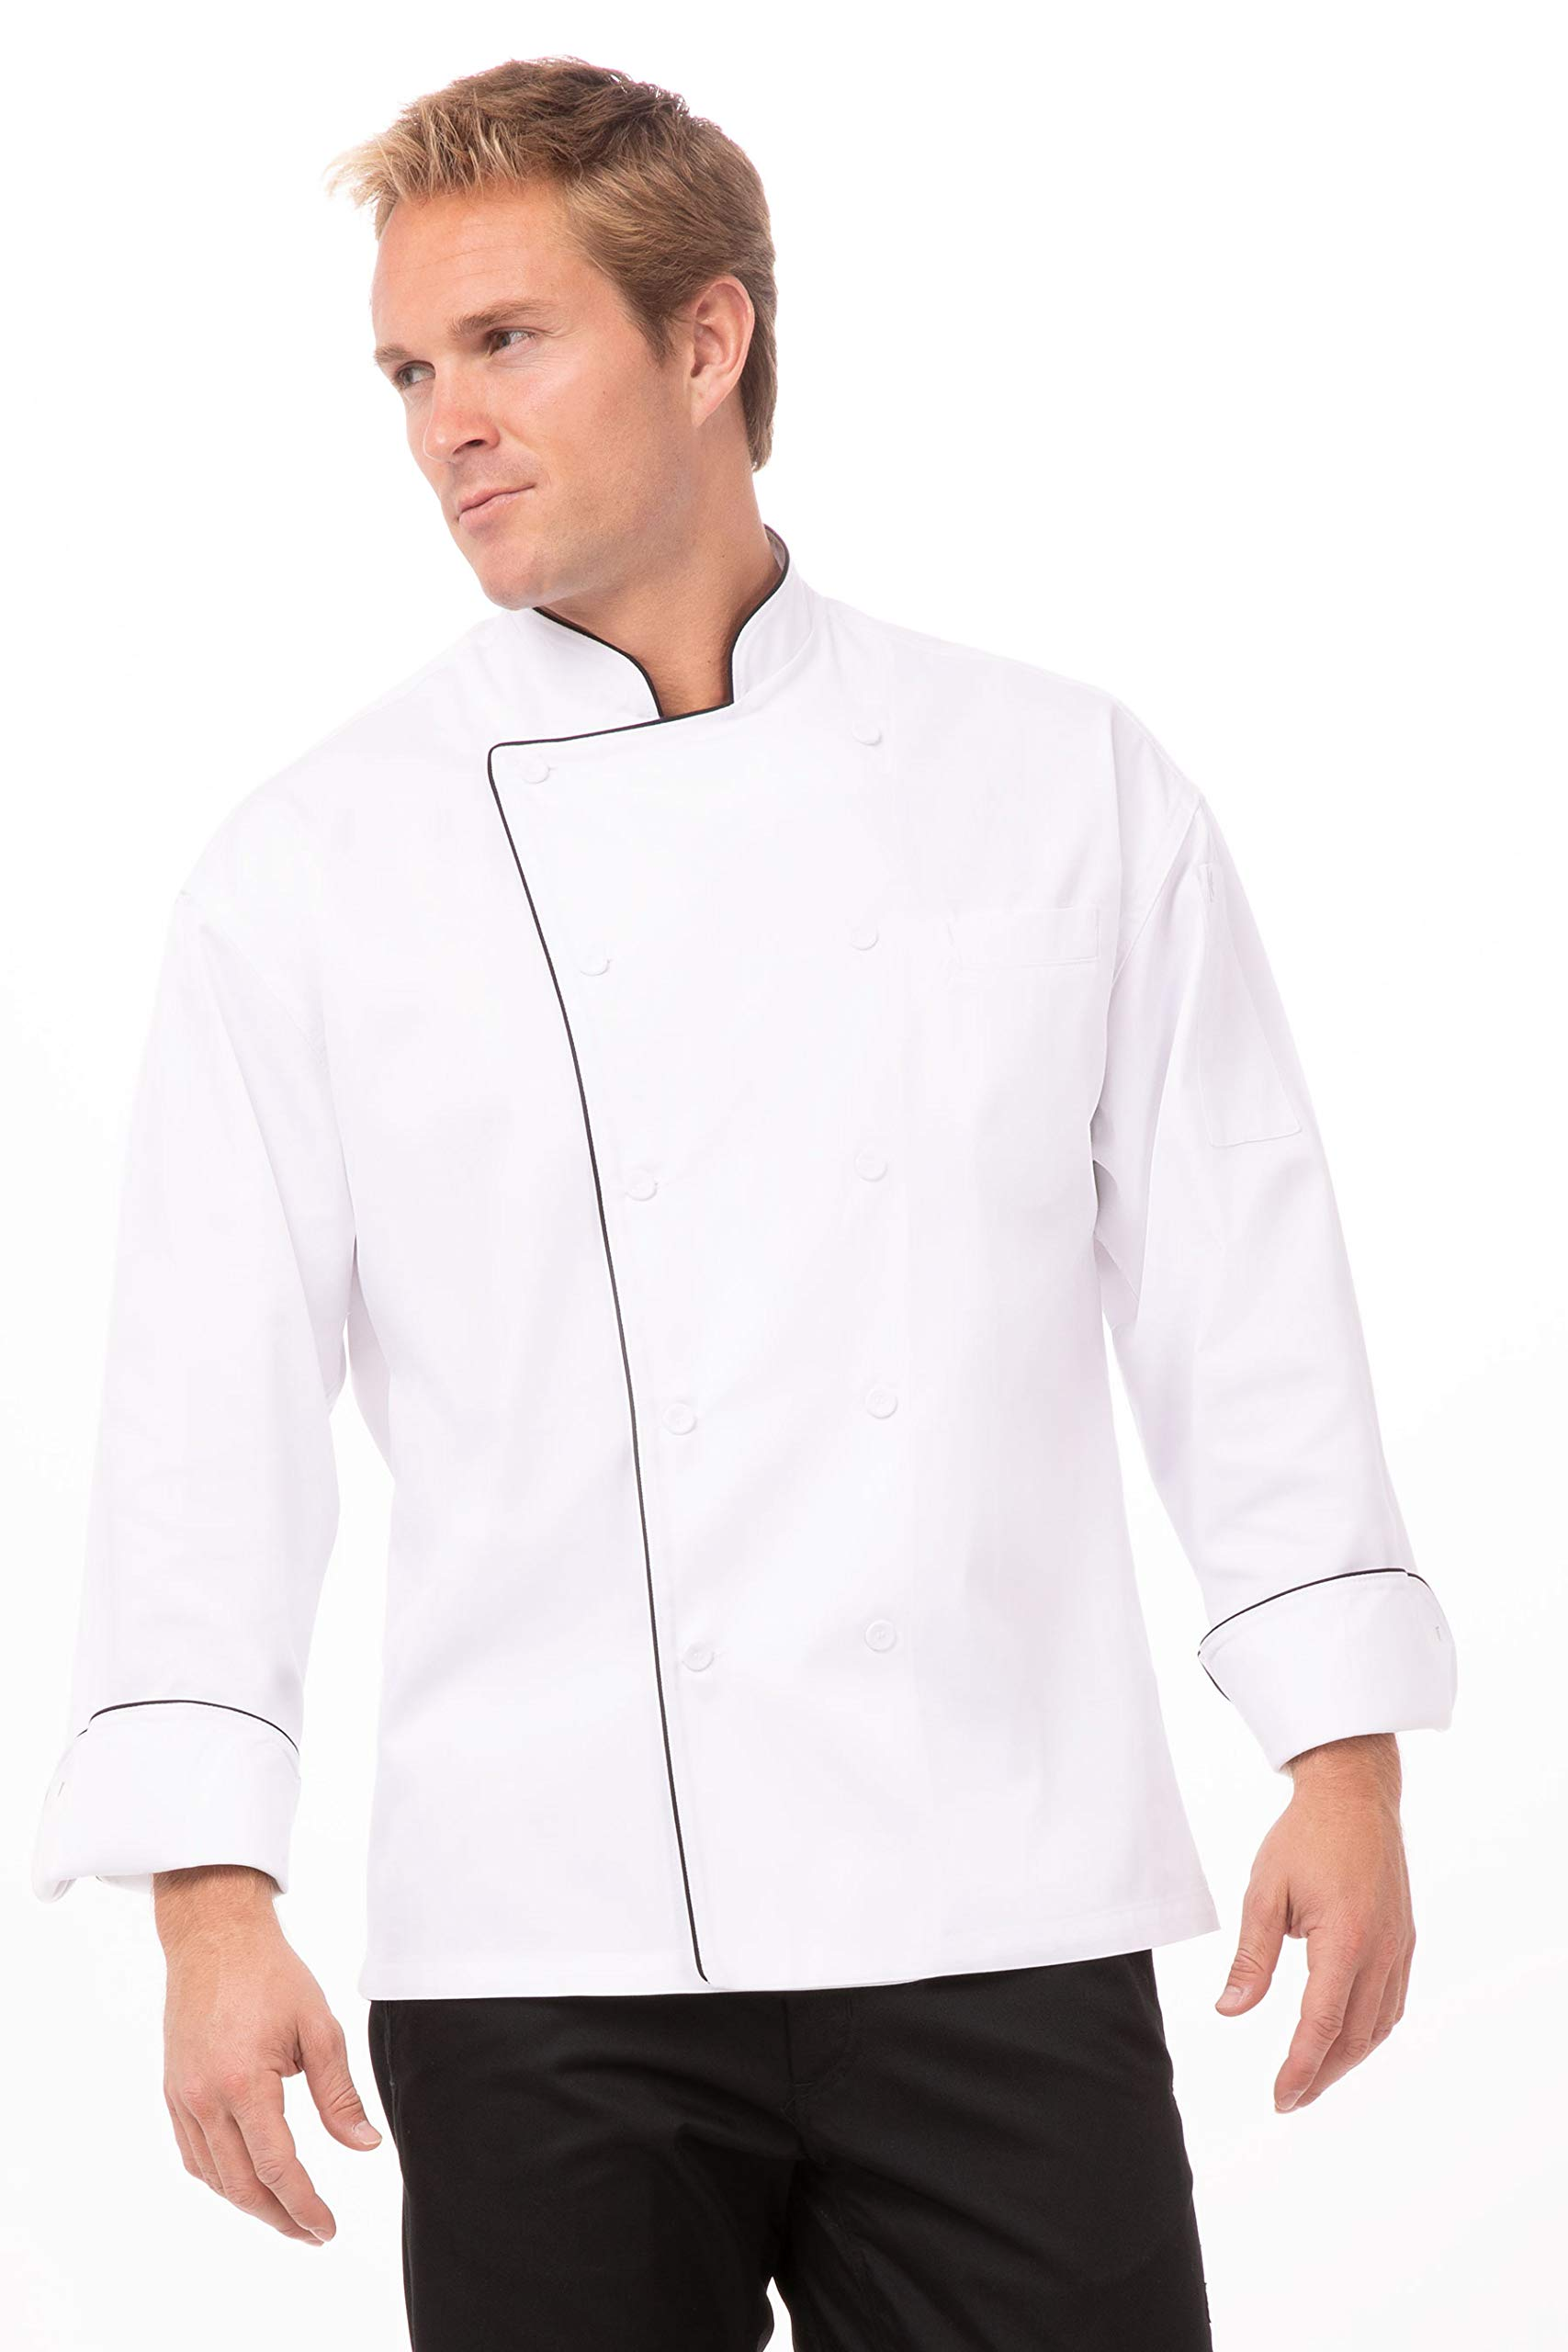 Chef Works Men's Sicily Executive Chef Coat, White, Large by Chef Works